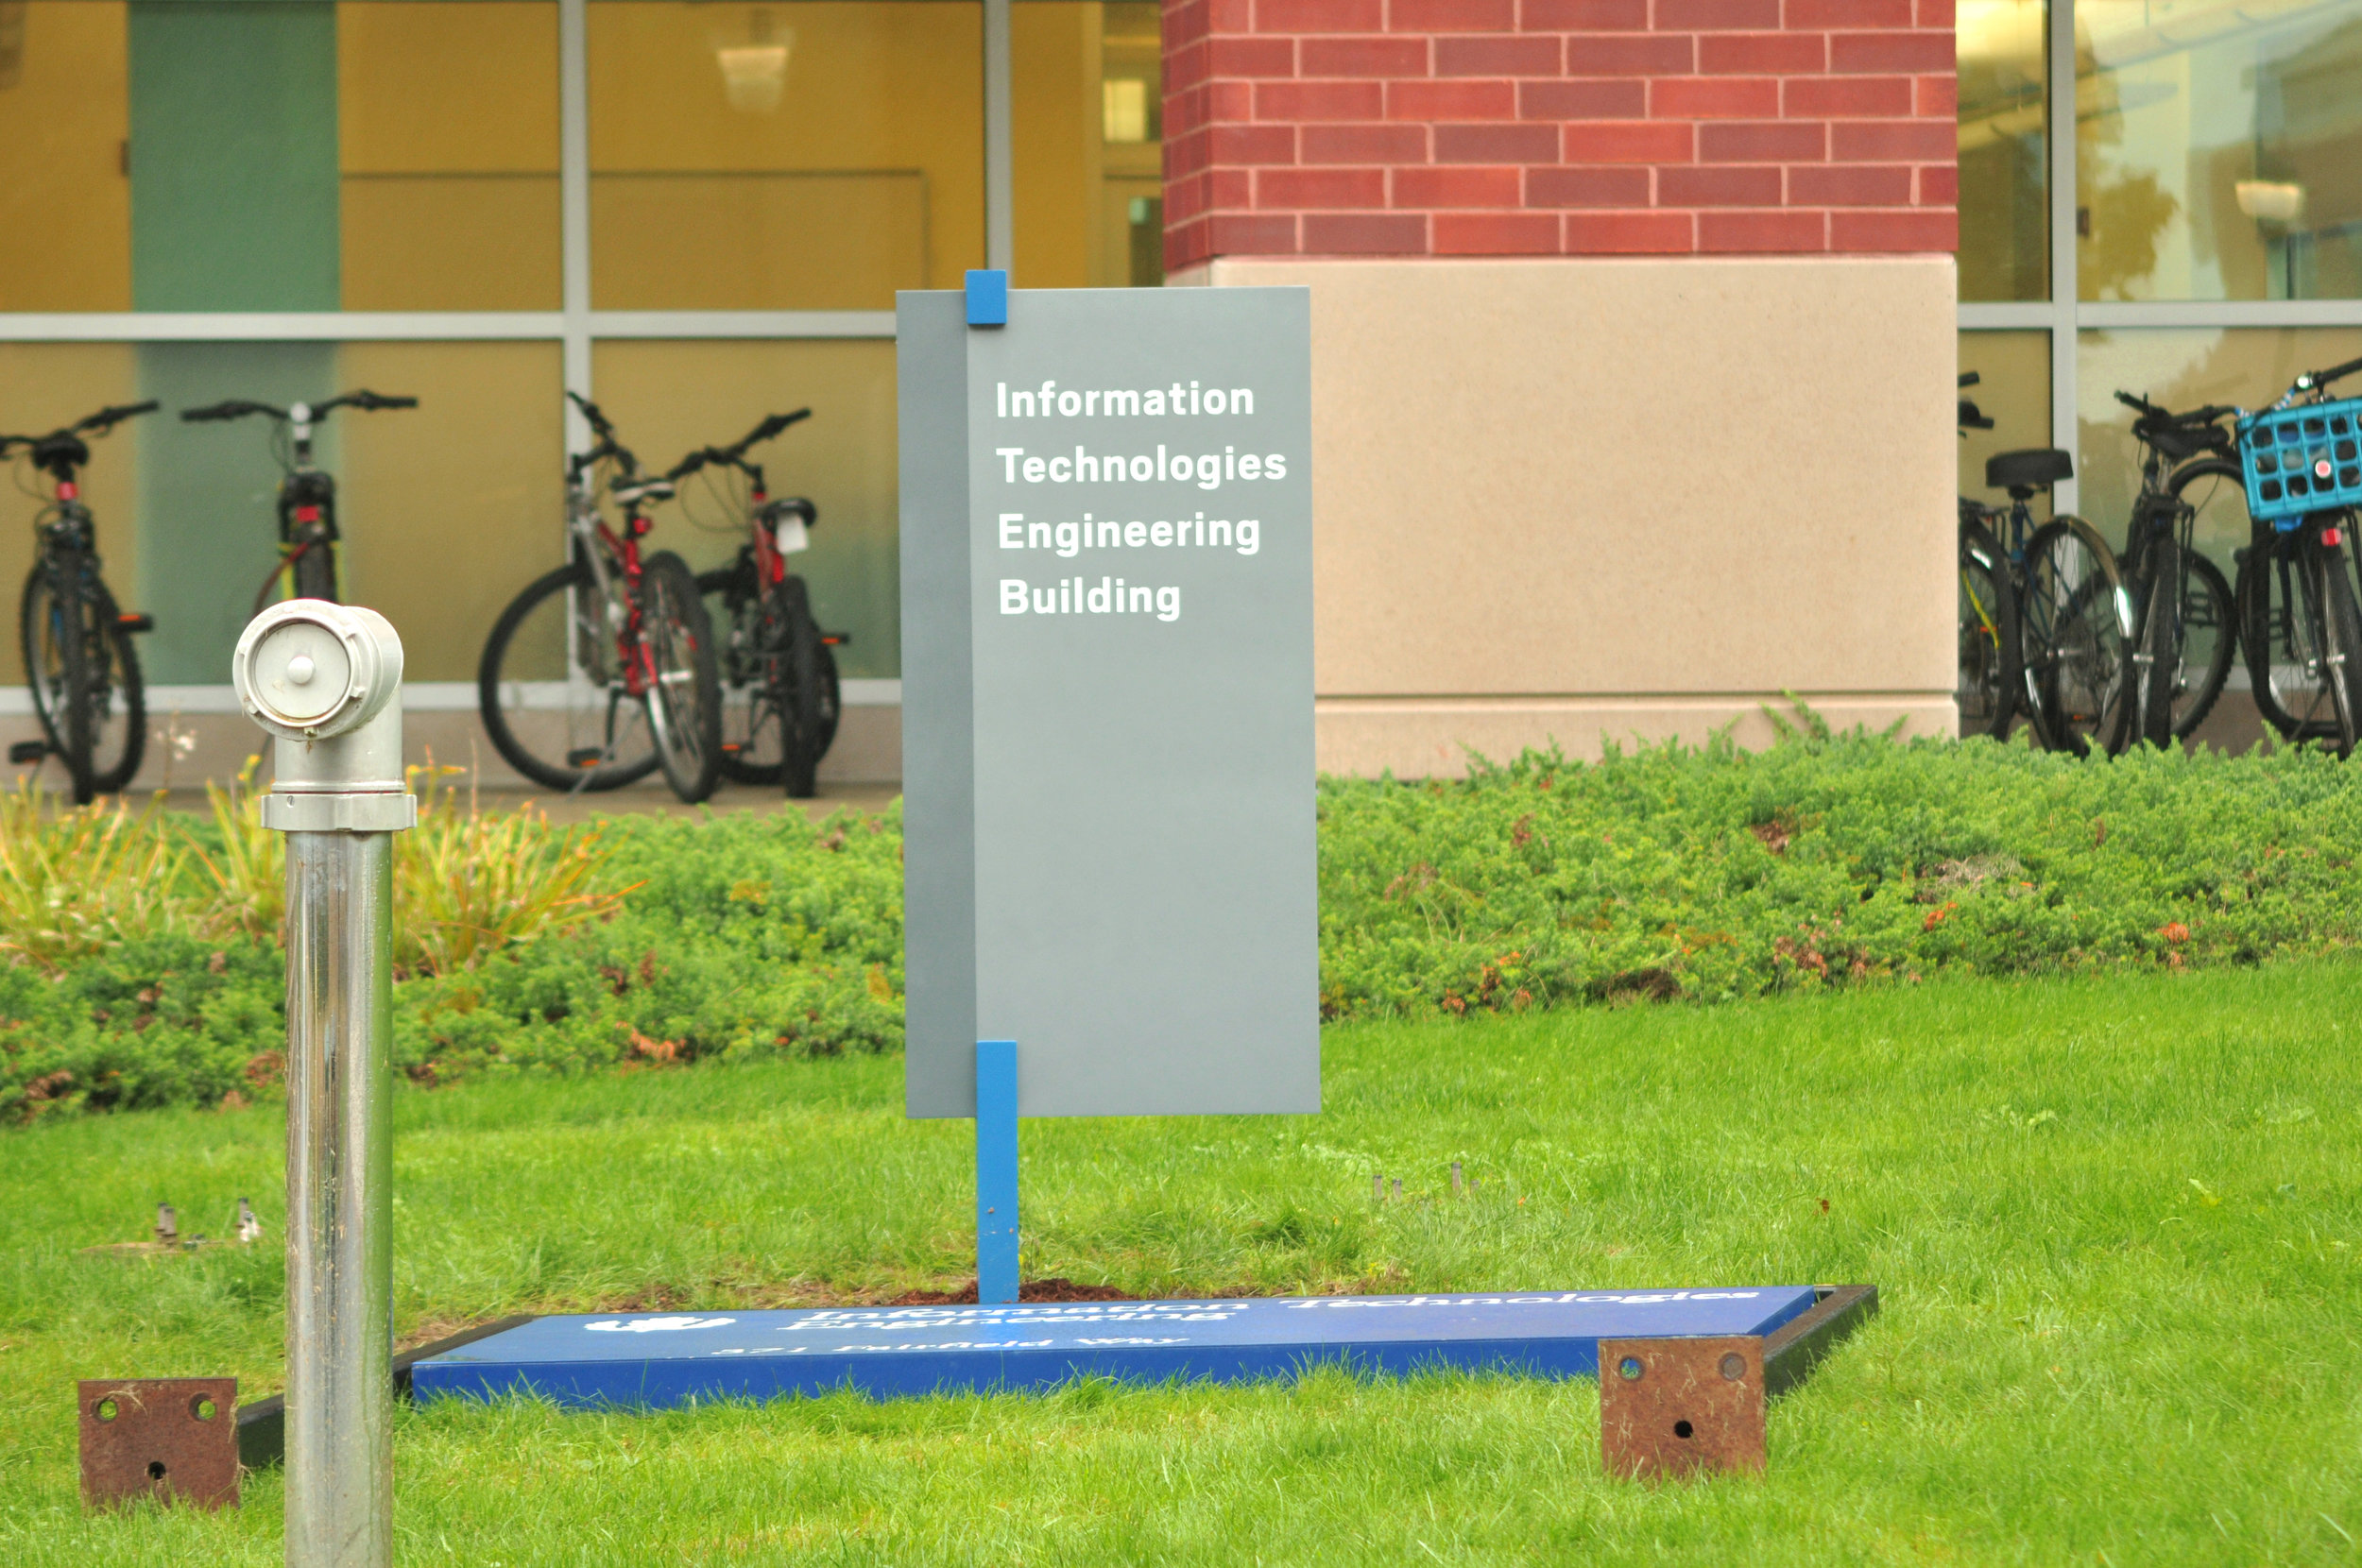 New signs aim to help navigation on campus — The Daily Campus